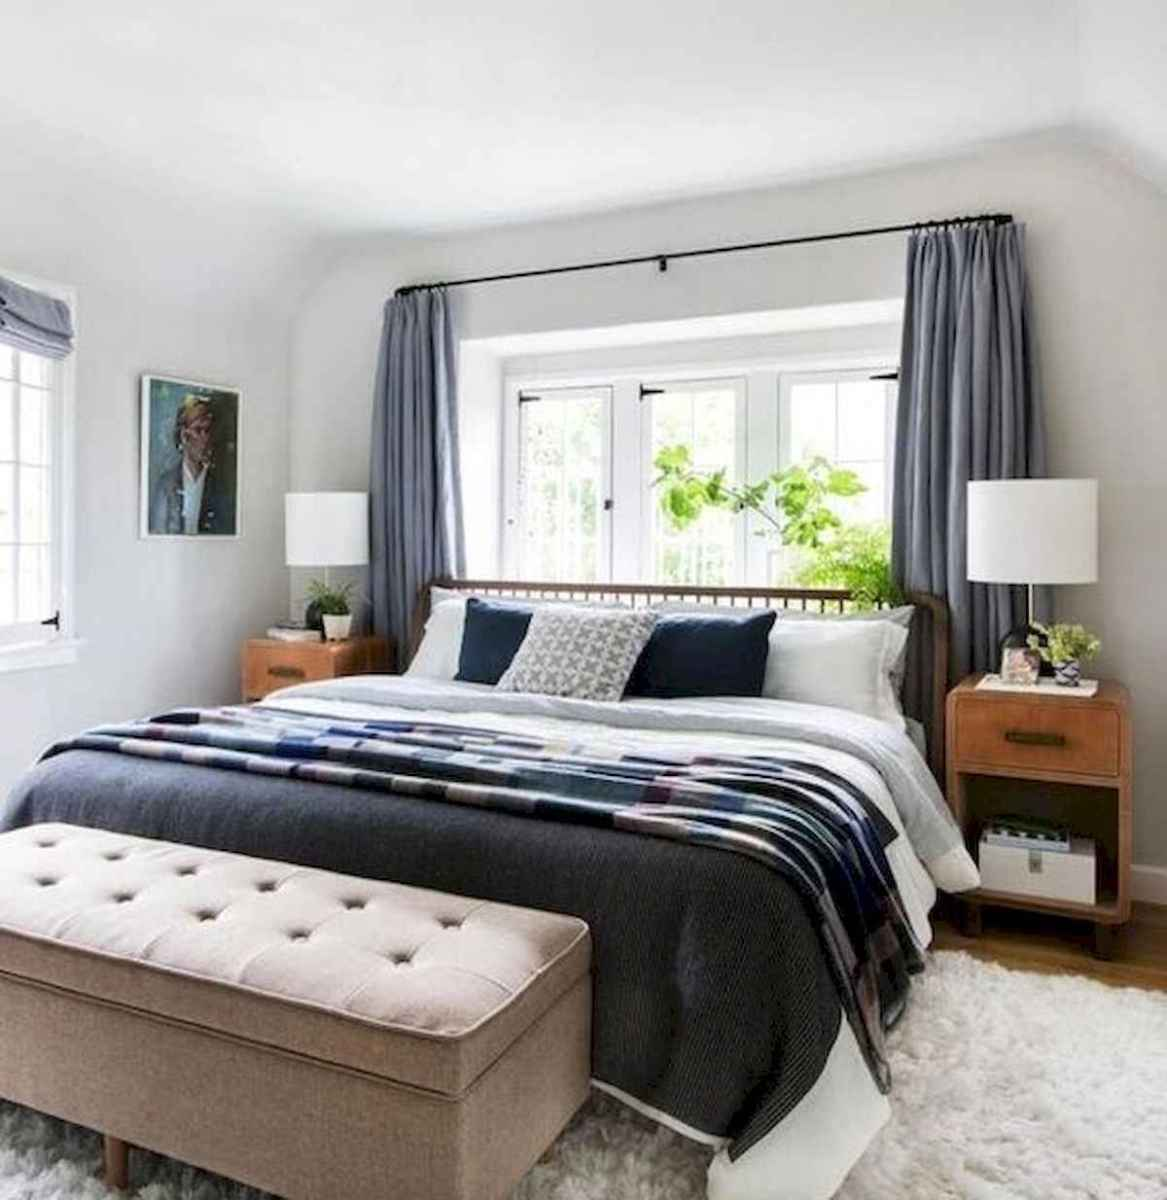 50 Stunning Small Apartment Bedroom Design Ideas and Decor (37)